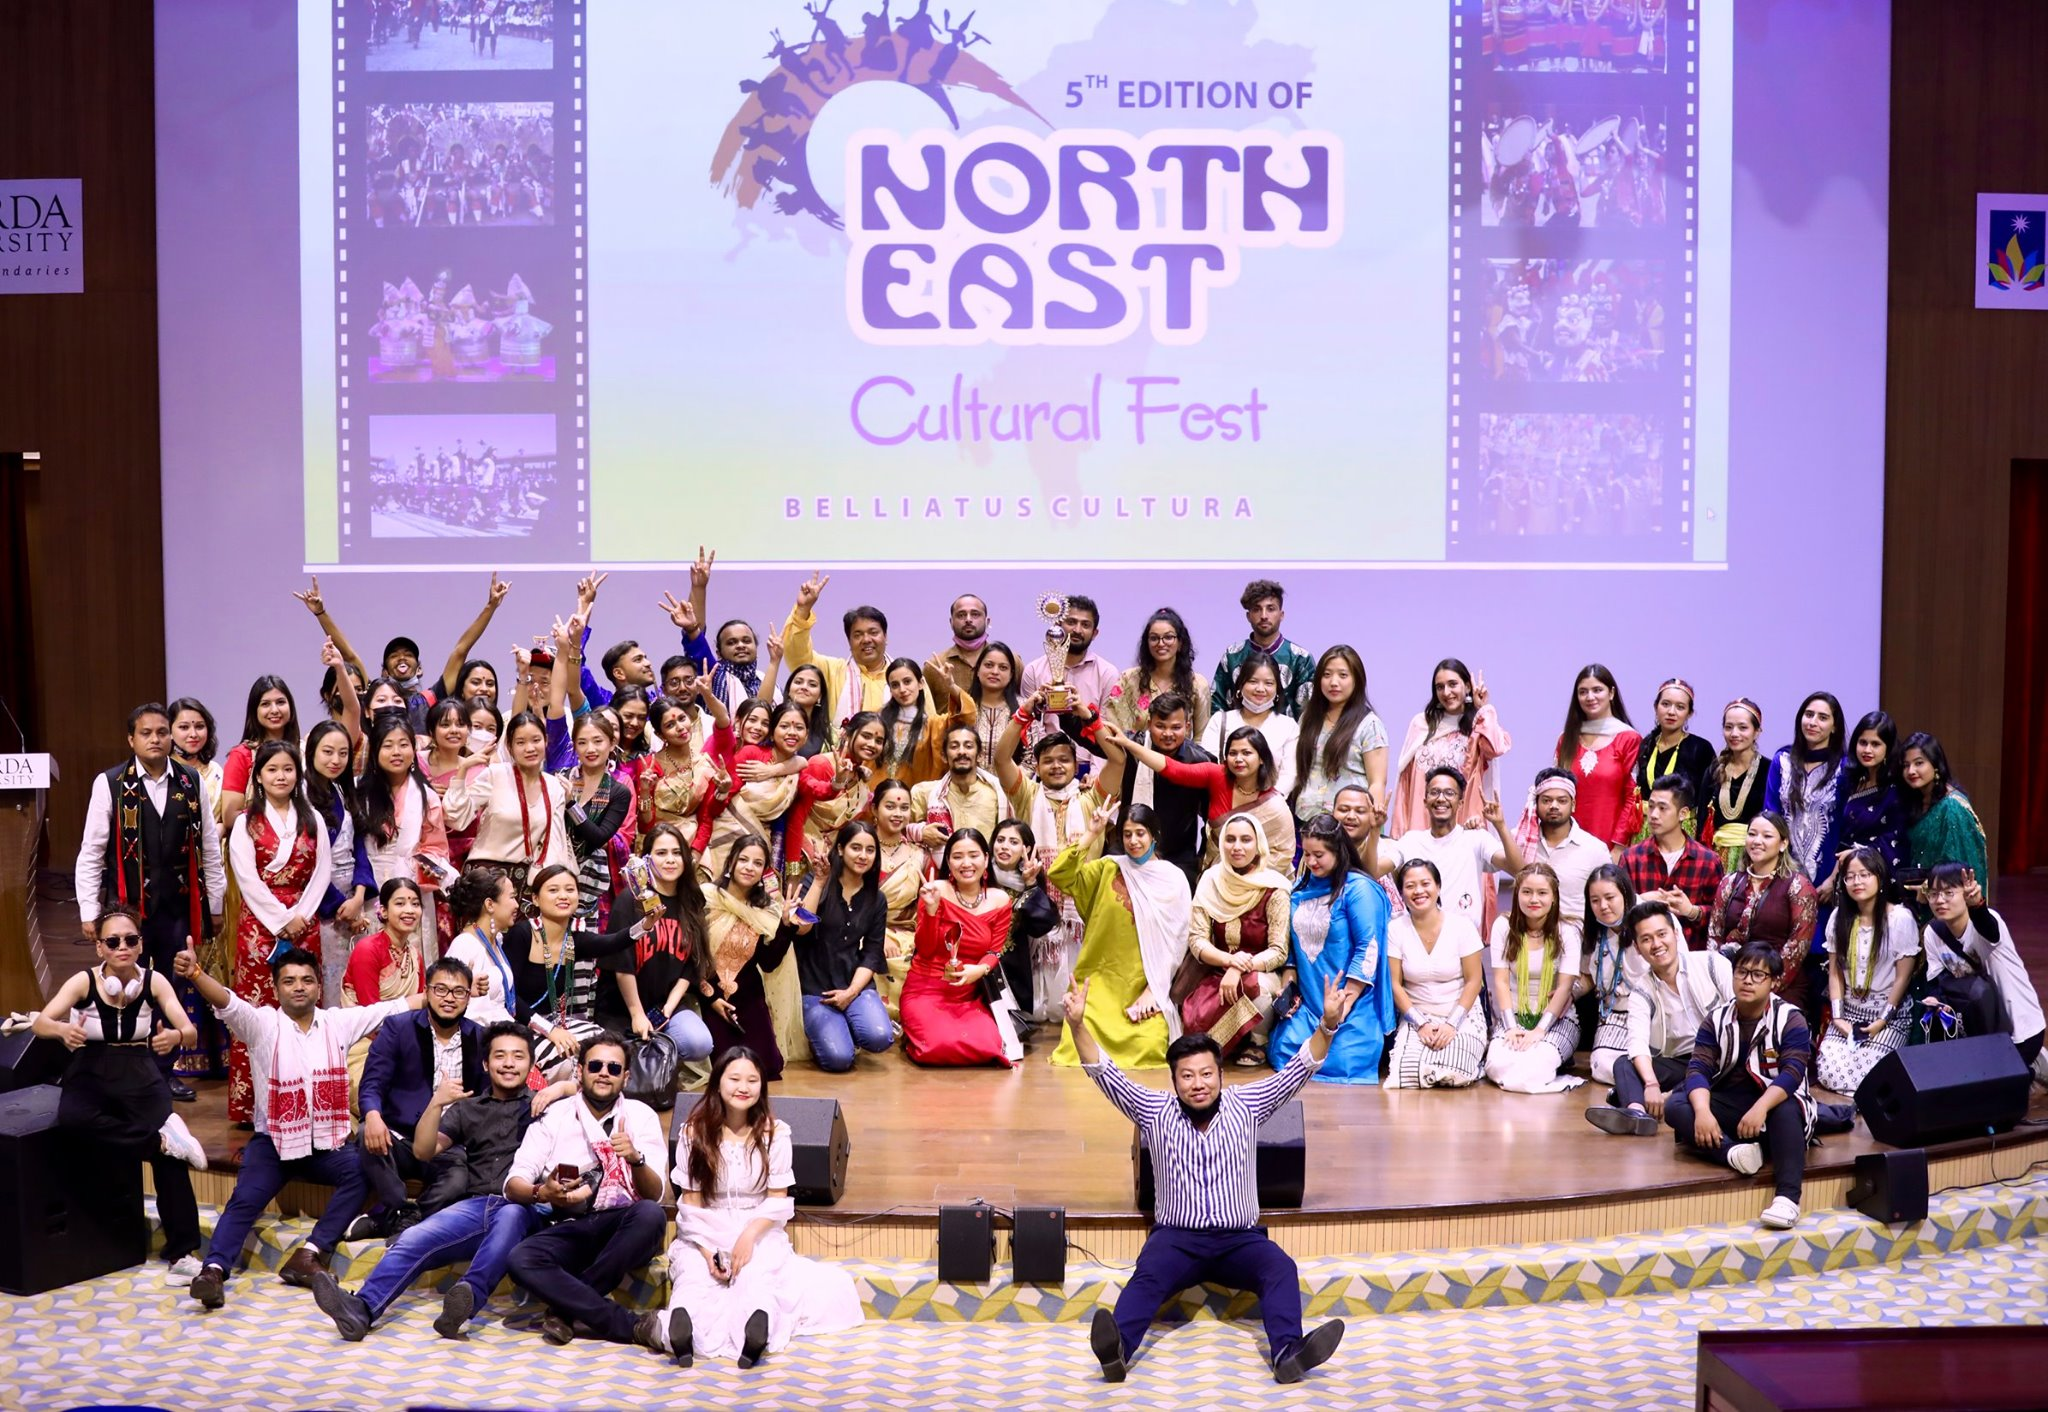 5th Edition of North East Cultural Fest (Belliatus Cultura) on March 23, 2021.